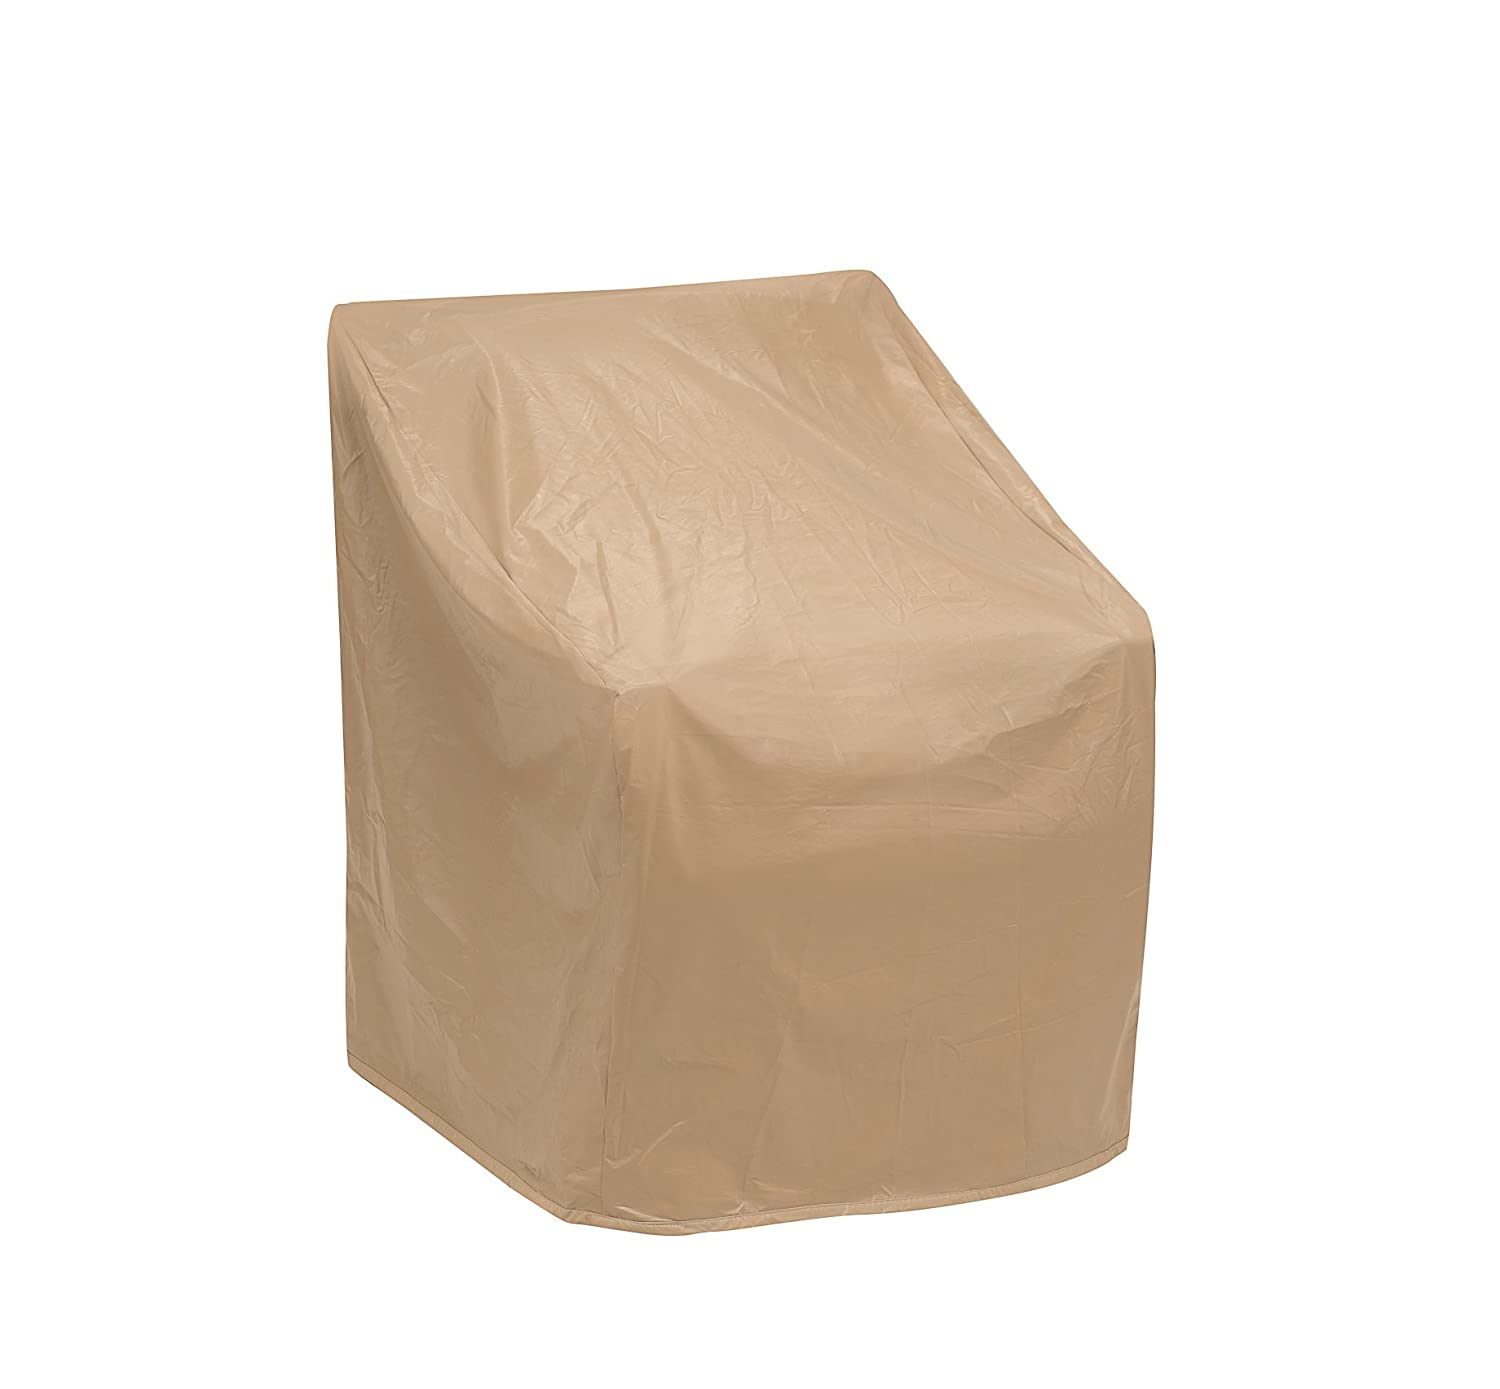 "Protective Covers 1120-TN Oversized Wicker Chair Cover, Tan (36""Wx41""Lx41""H)"